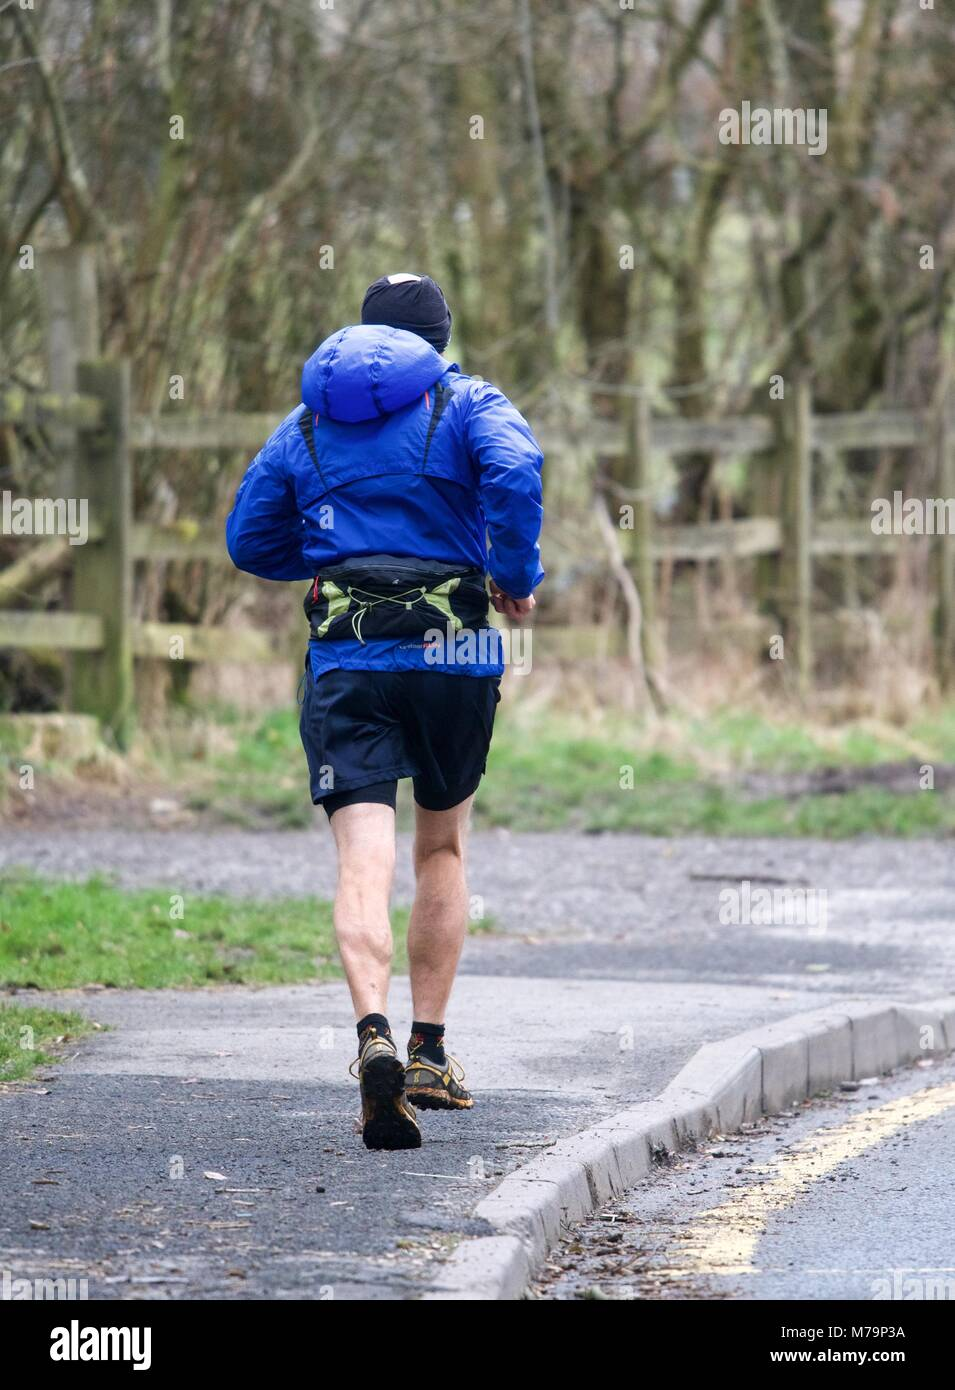 A mna jogs on the pavement in Thornsett near New Mills,  Derbyshire. - Stock Image